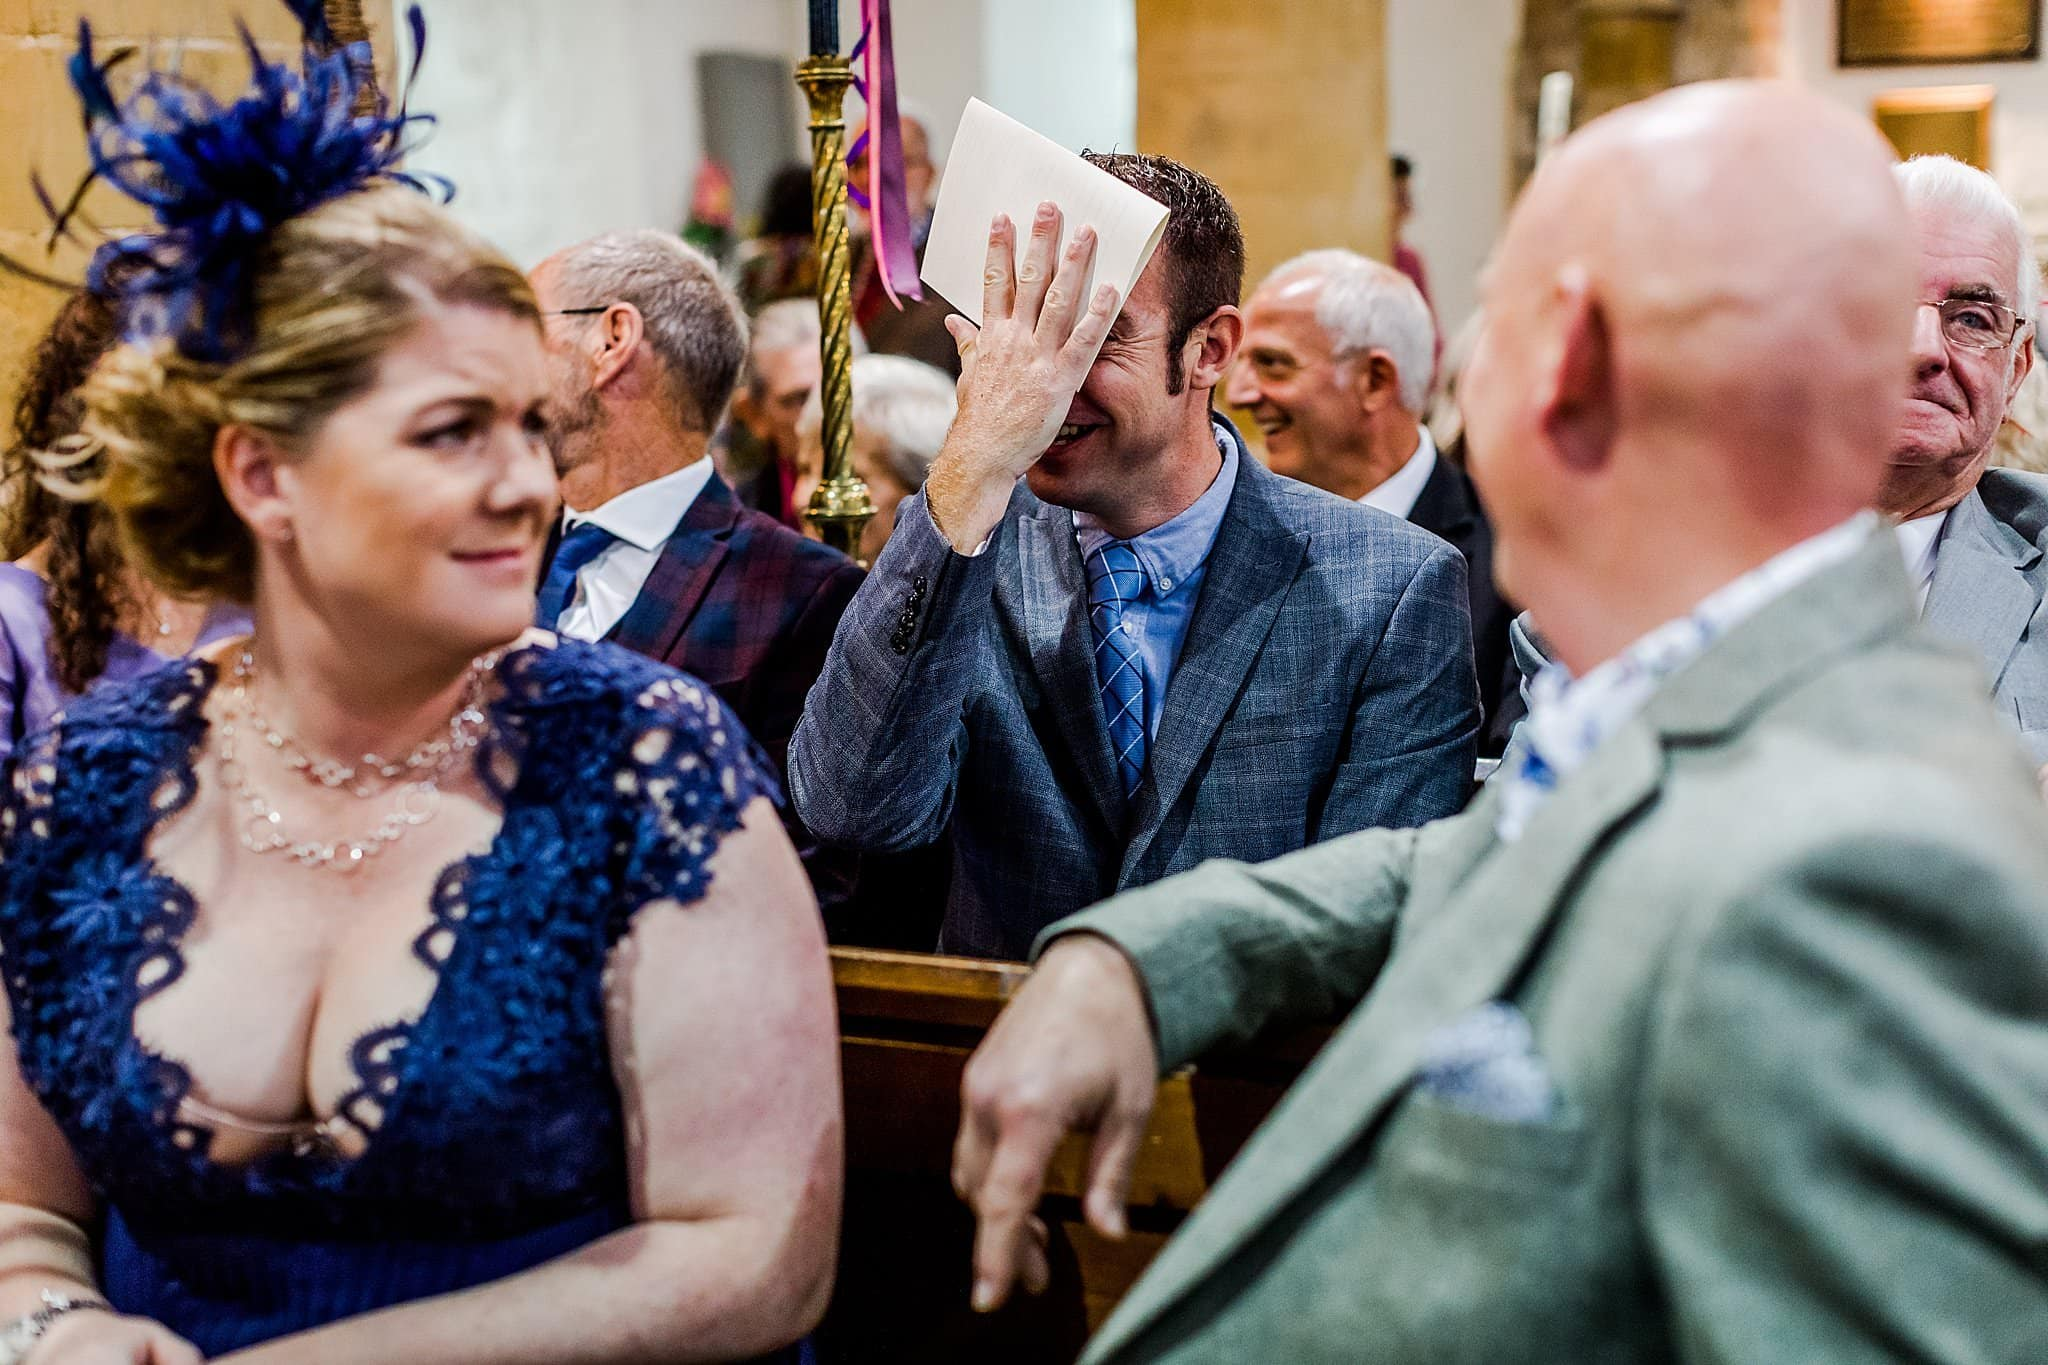 Wedding guest hits his head with a order of service whilst other guests look confused